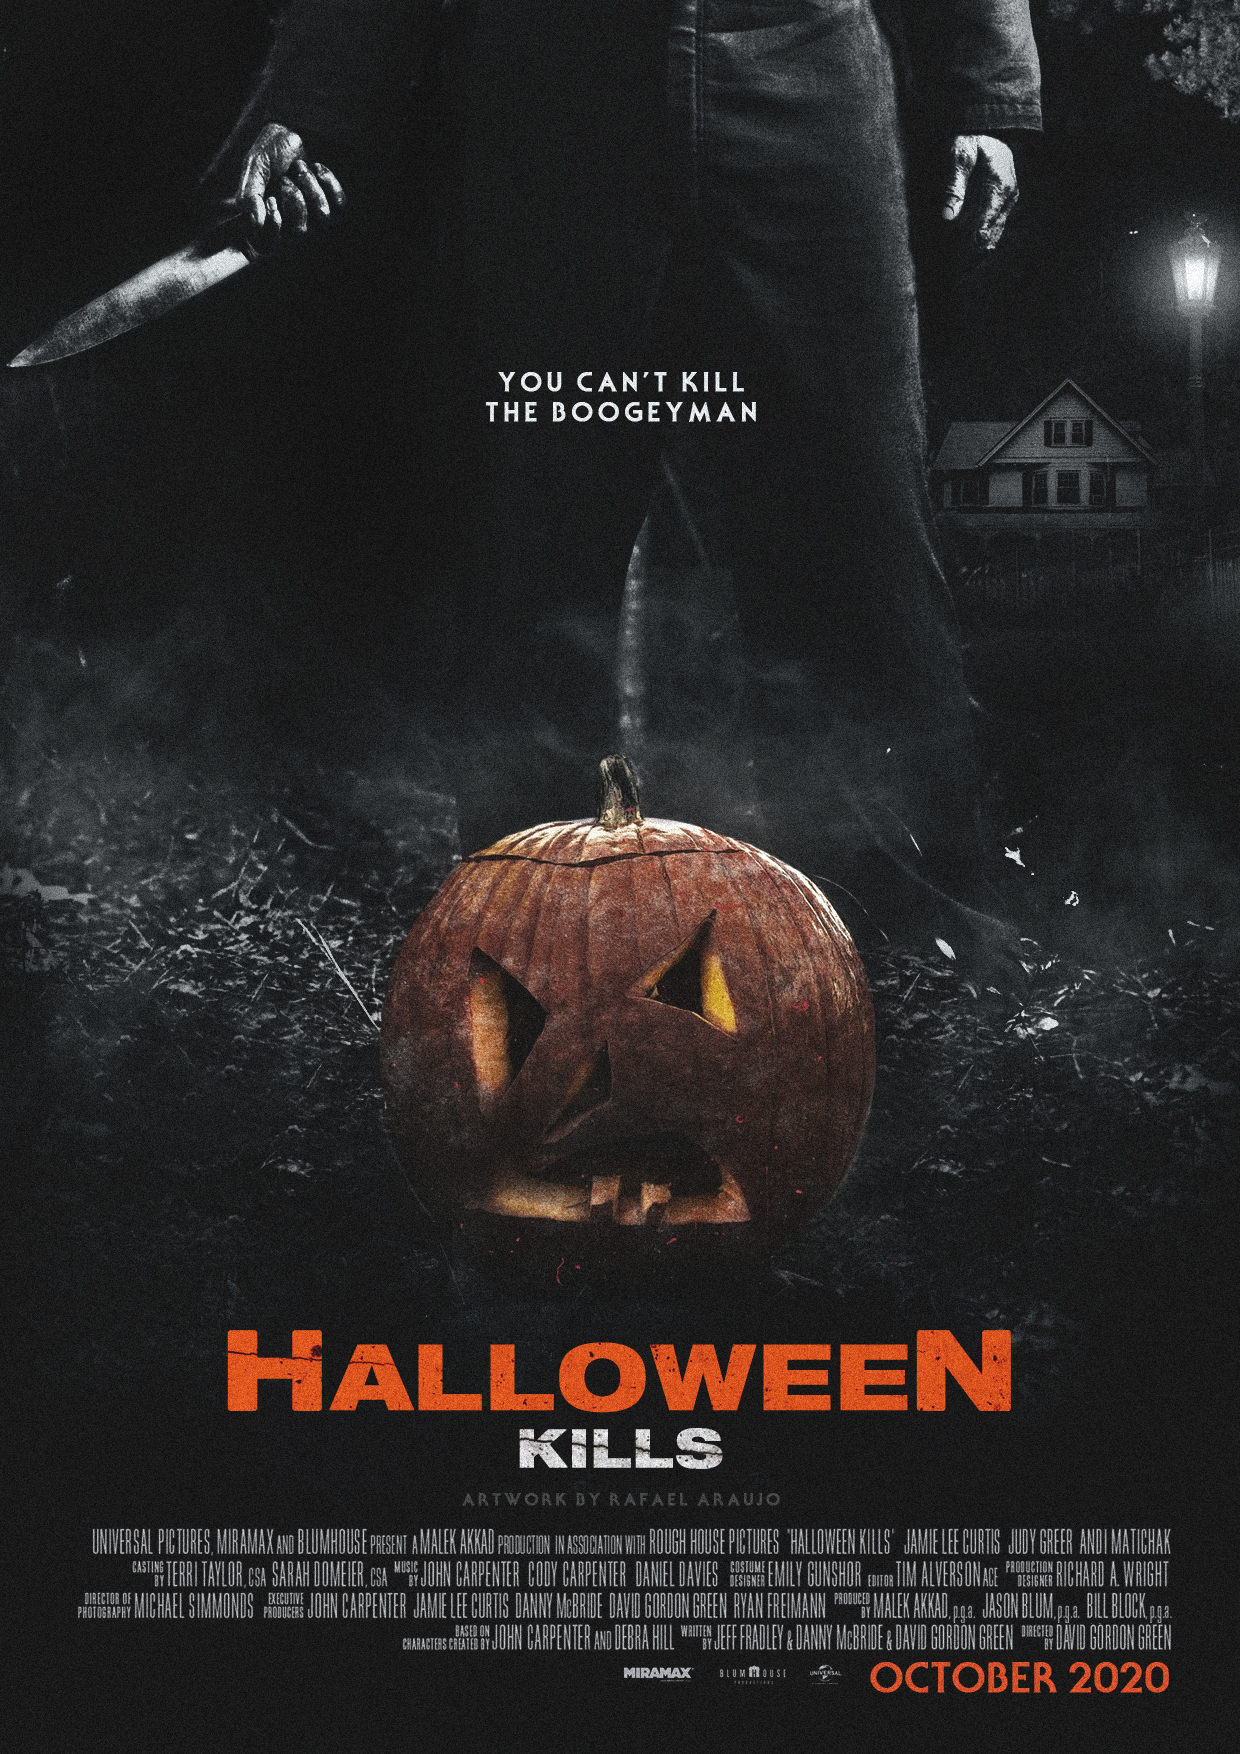 Halloween 2020 Teaster Poster Halloween Kills (2020) Teaser Poster by amazing zuckonit on DeviantArt